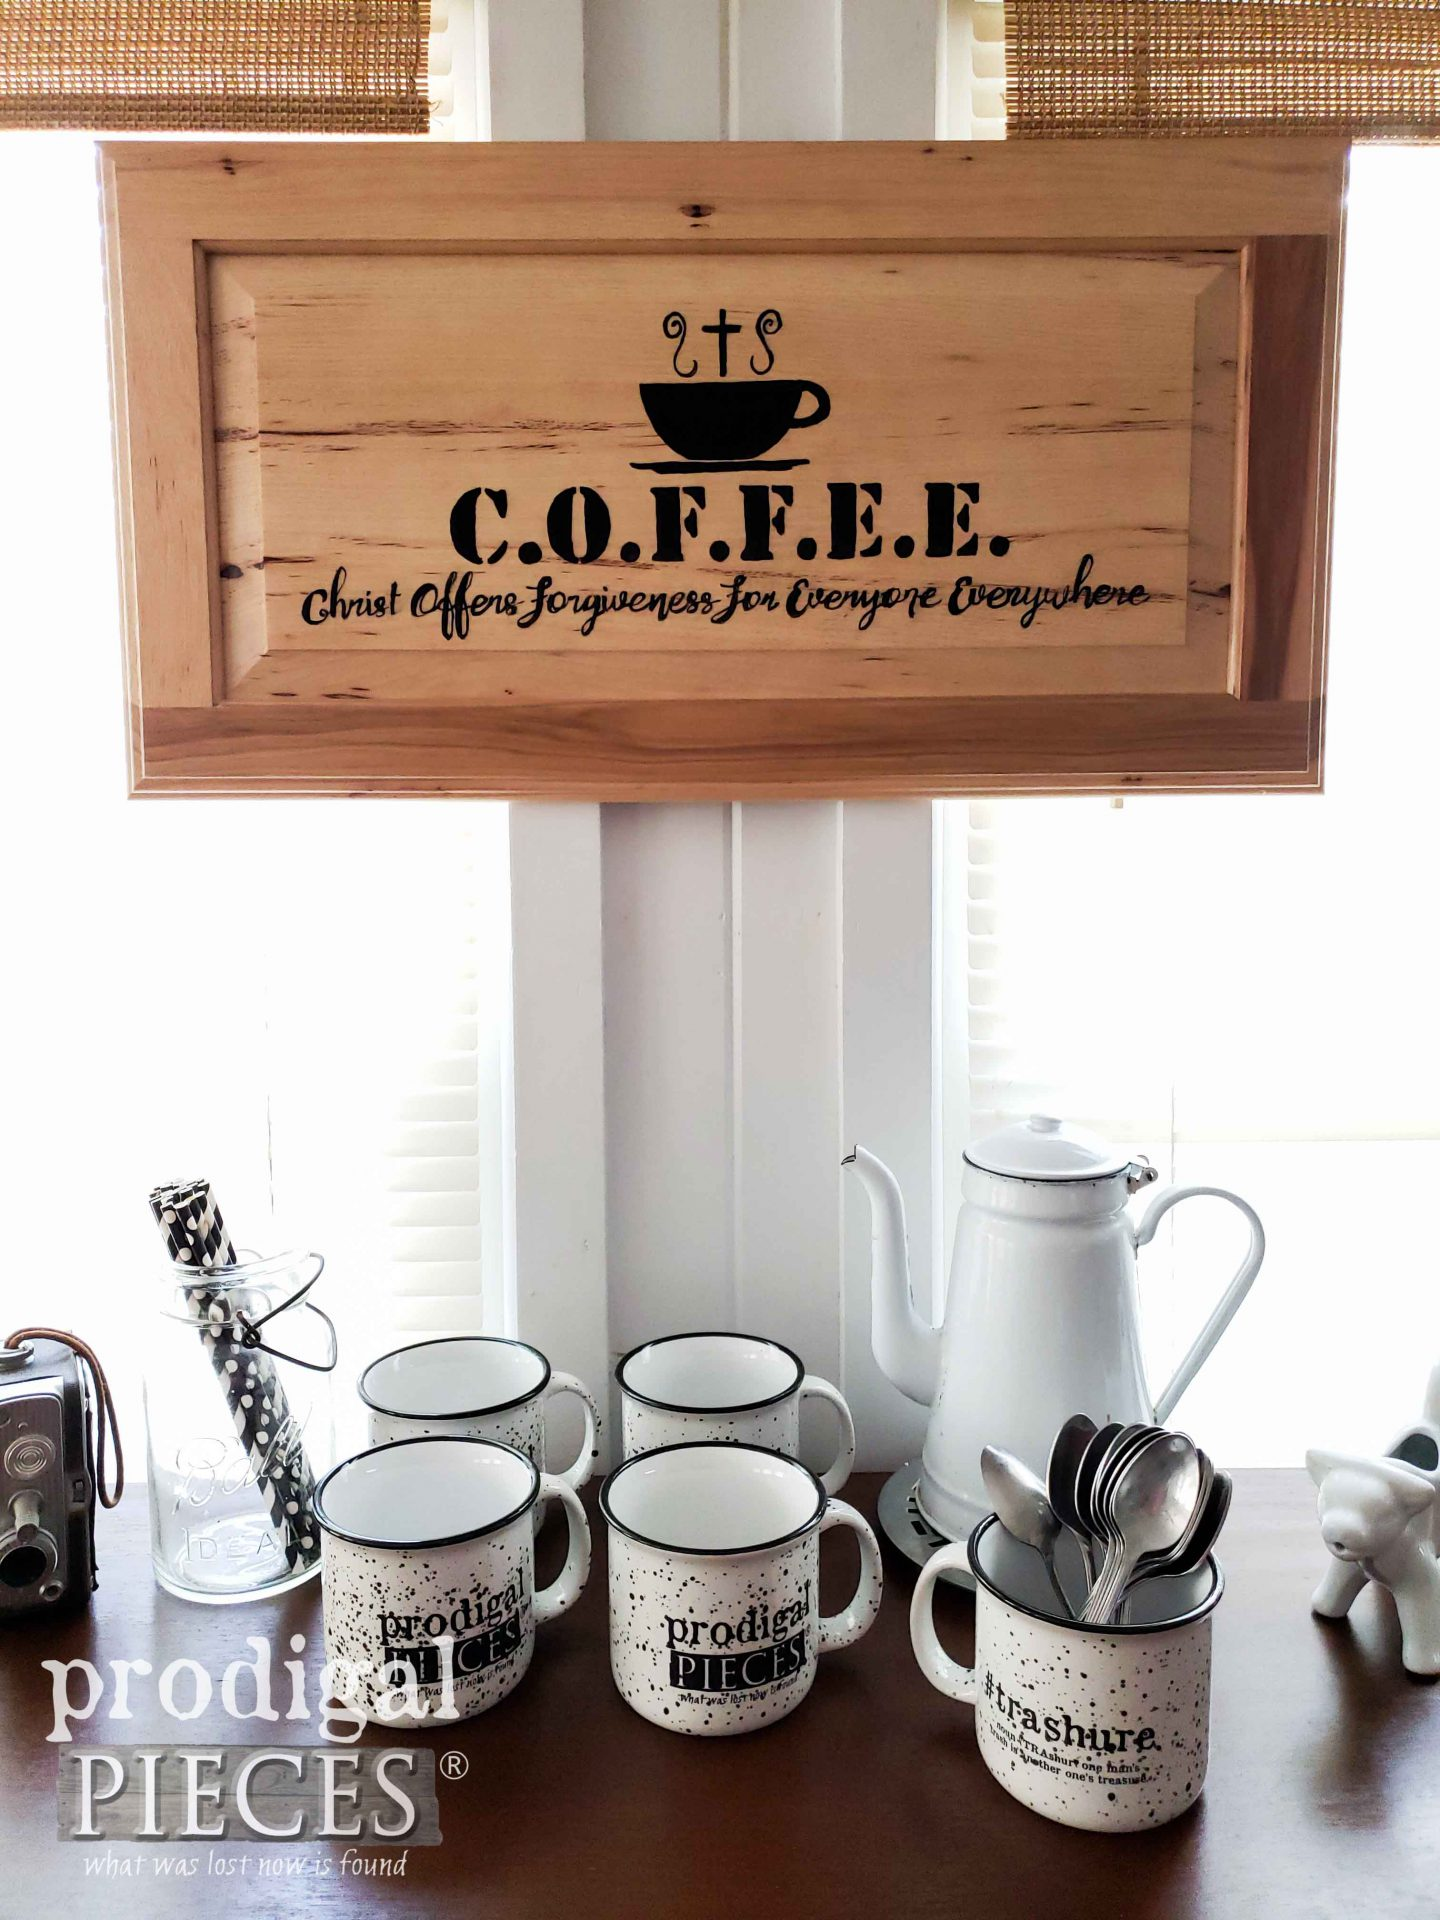 DIY Reclaimed Cupboard Door Coffee Sign by Larissa of Prodigal Pieces | prodigalpieces.com #prodigalpieces #handmade #home #coffee #farmhouse #homedecor